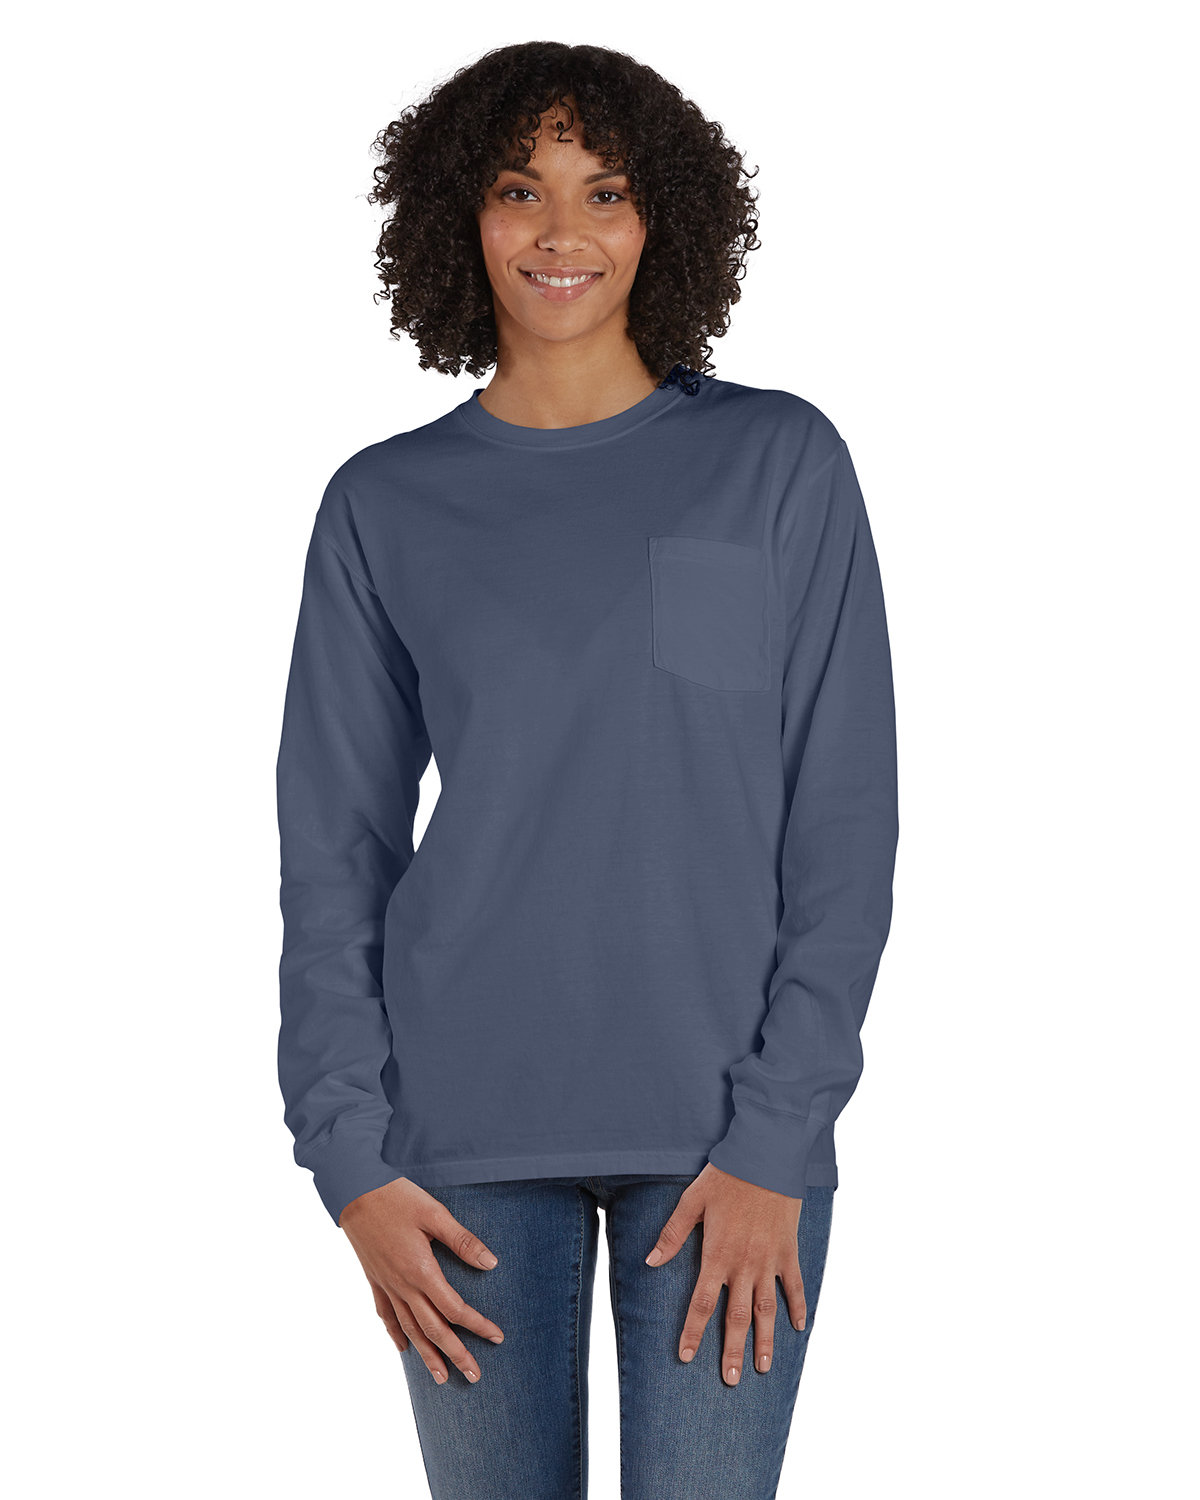 ComfortWash by Hanes Unisex Garment-Dyed Long-Sleeve T-Shirt with Pocket ANCHOR SLATE